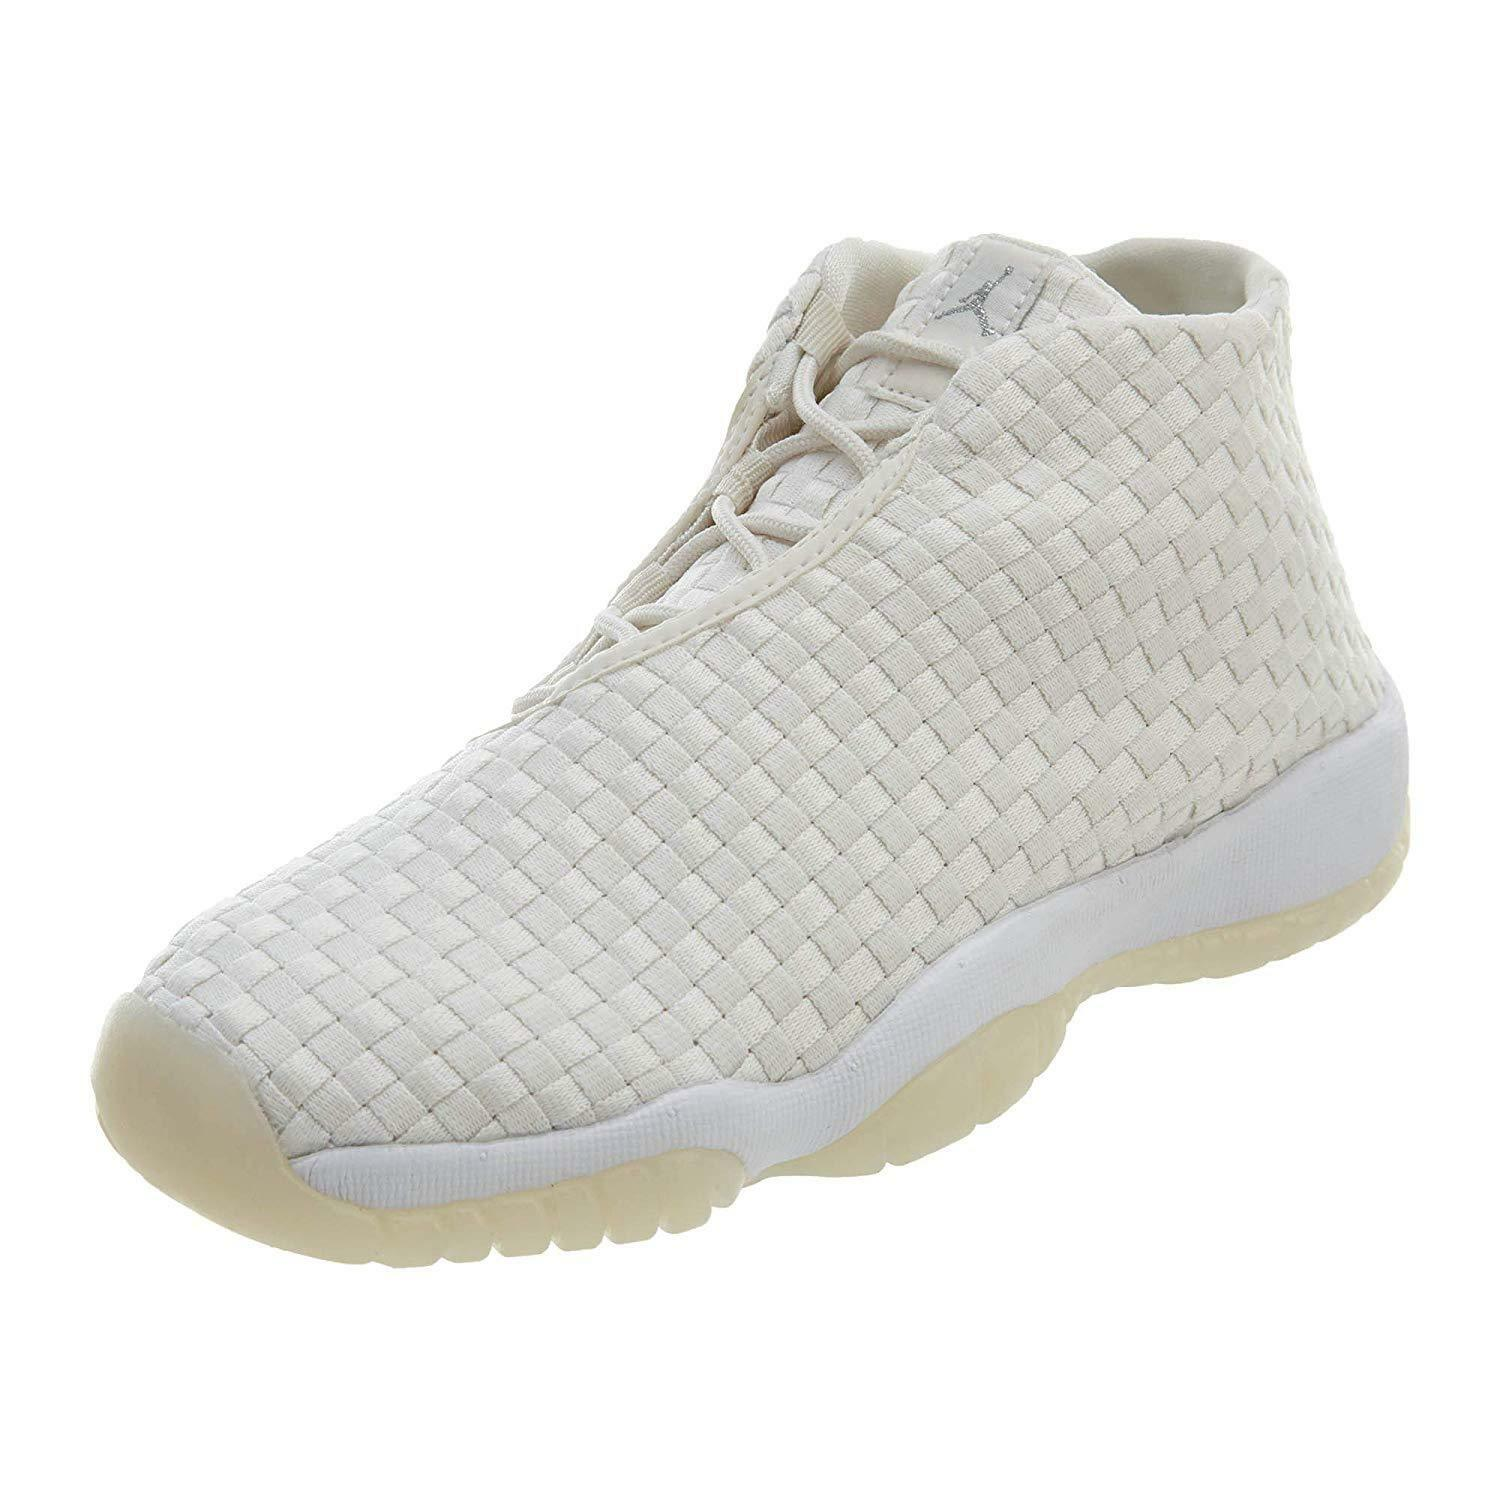 Jordan 002) Air Jordan Future BG Phantom/Phantom-Sail-White (GS) (656504 002) Jordan d2eecb